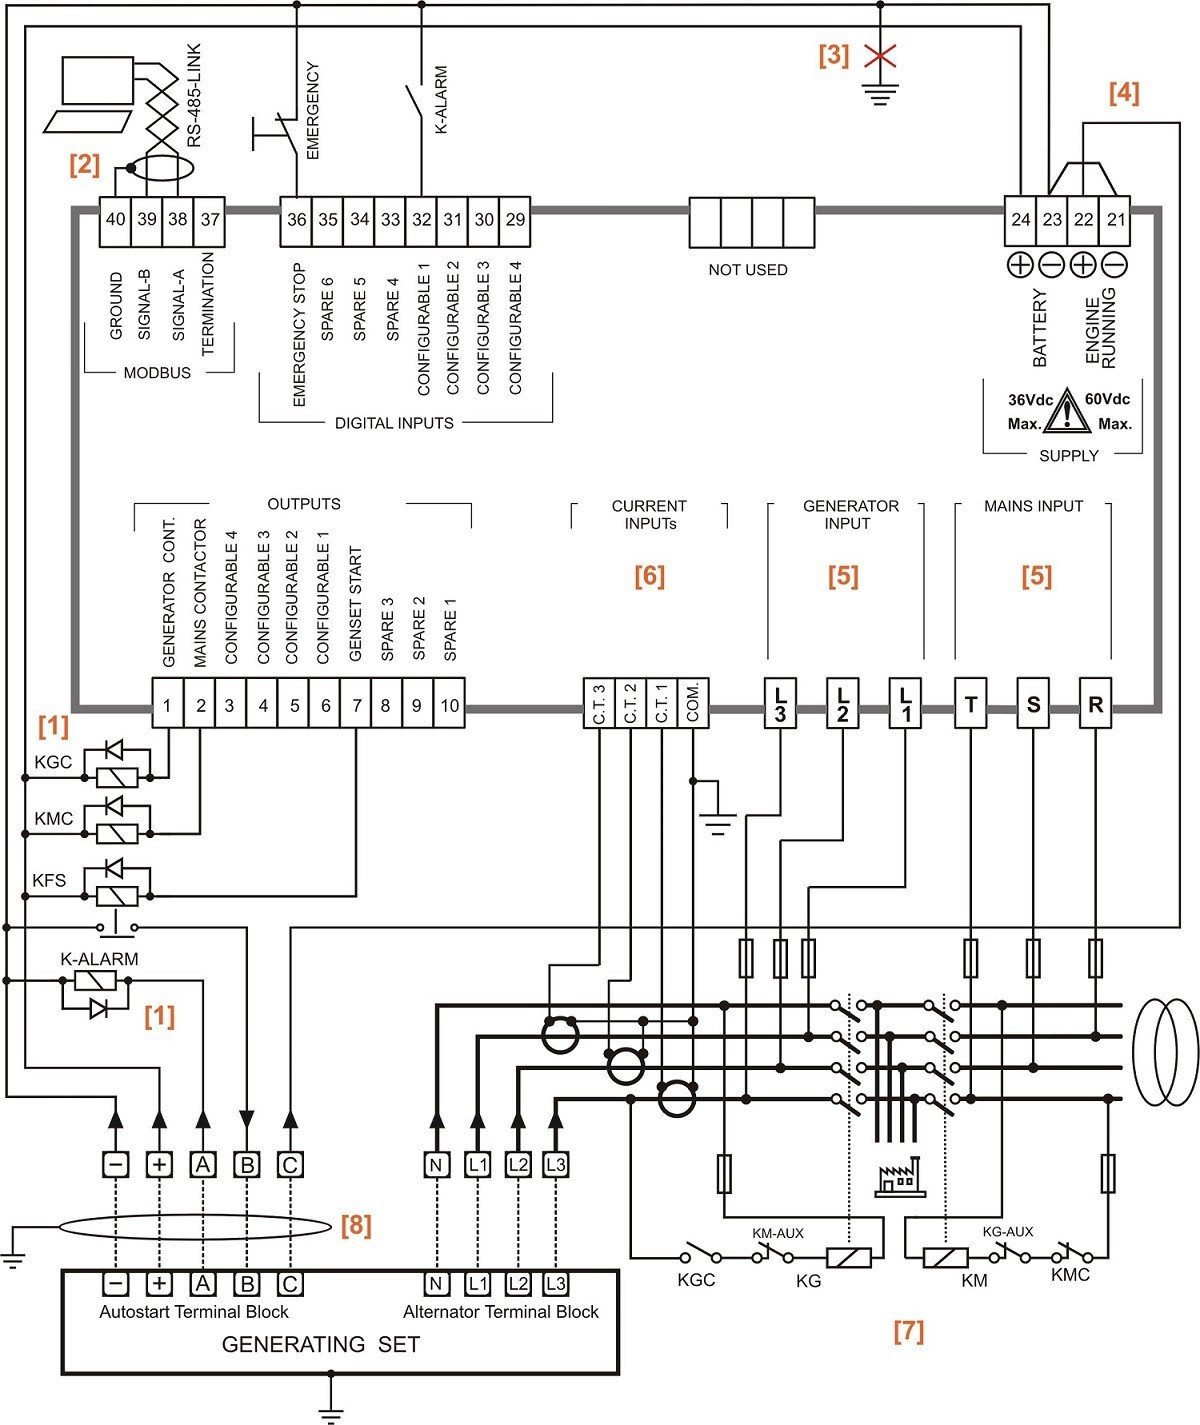 3 Pole Transfer Switch Wiring Diagram Collection 12V Switch Wiring 5 Wire  Switch Wiring Diagram Free Download